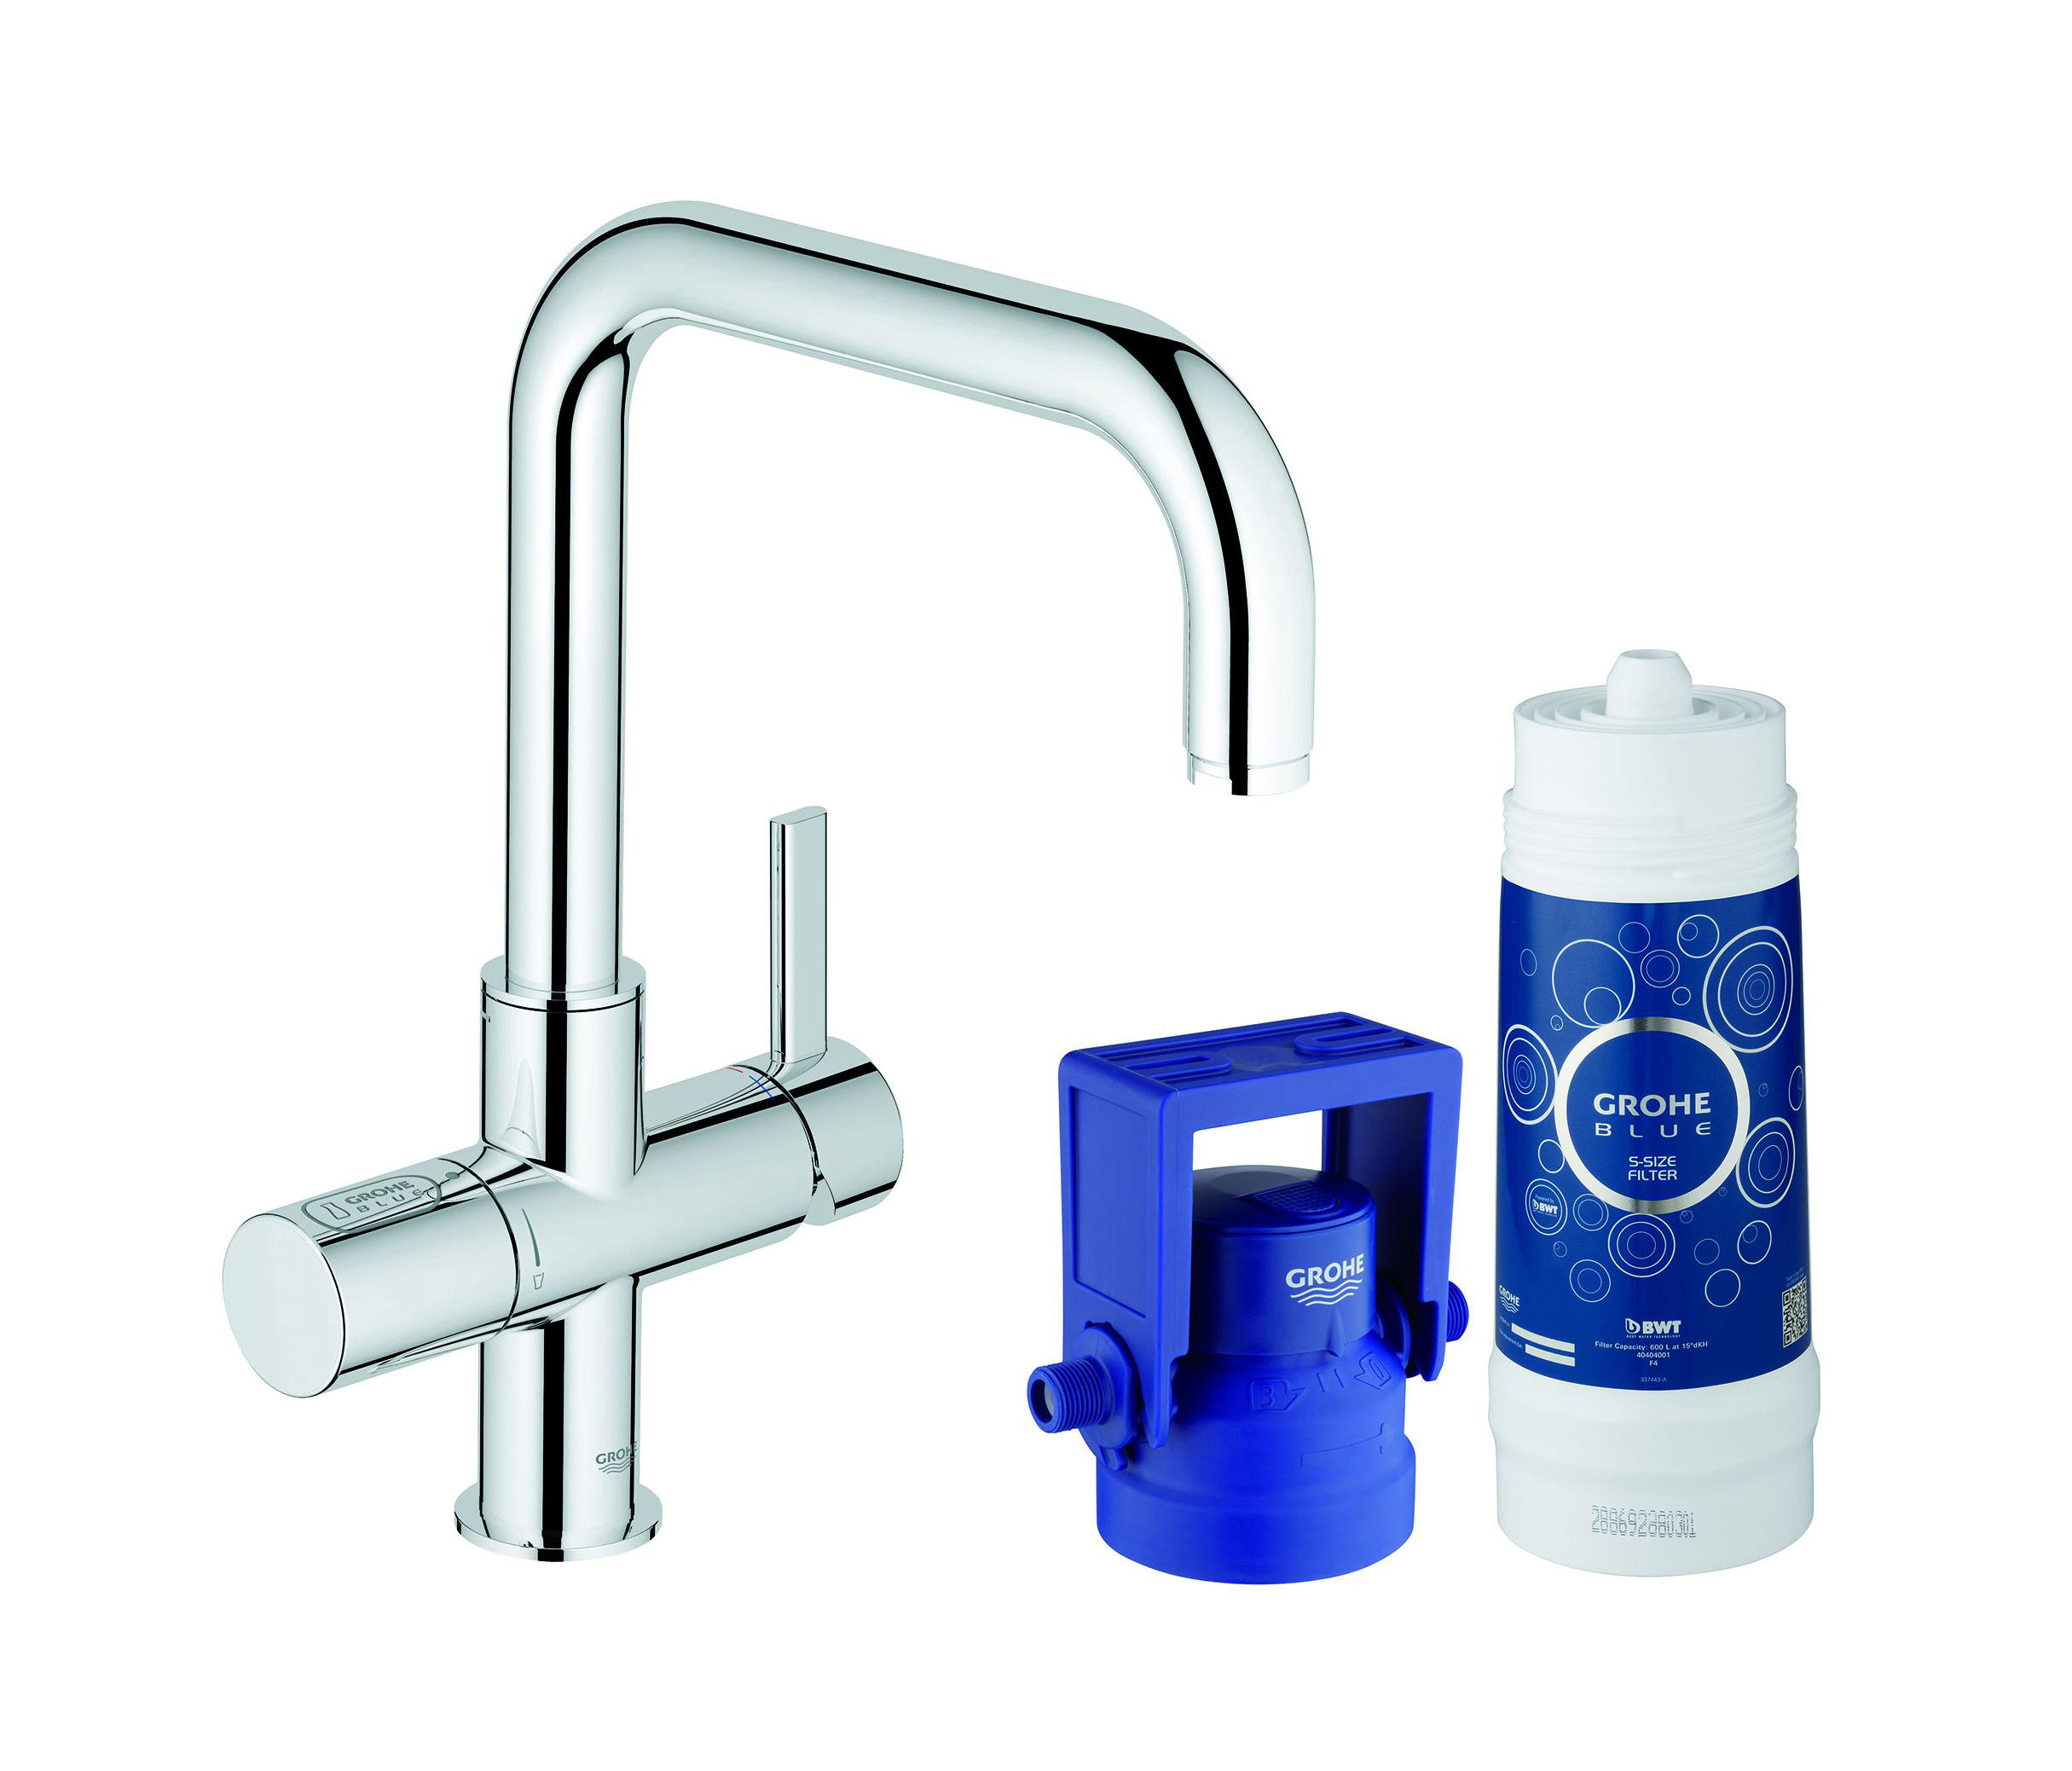 grohe blue pure starter kit kitchen taps from grohe. Black Bedroom Furniture Sets. Home Design Ideas